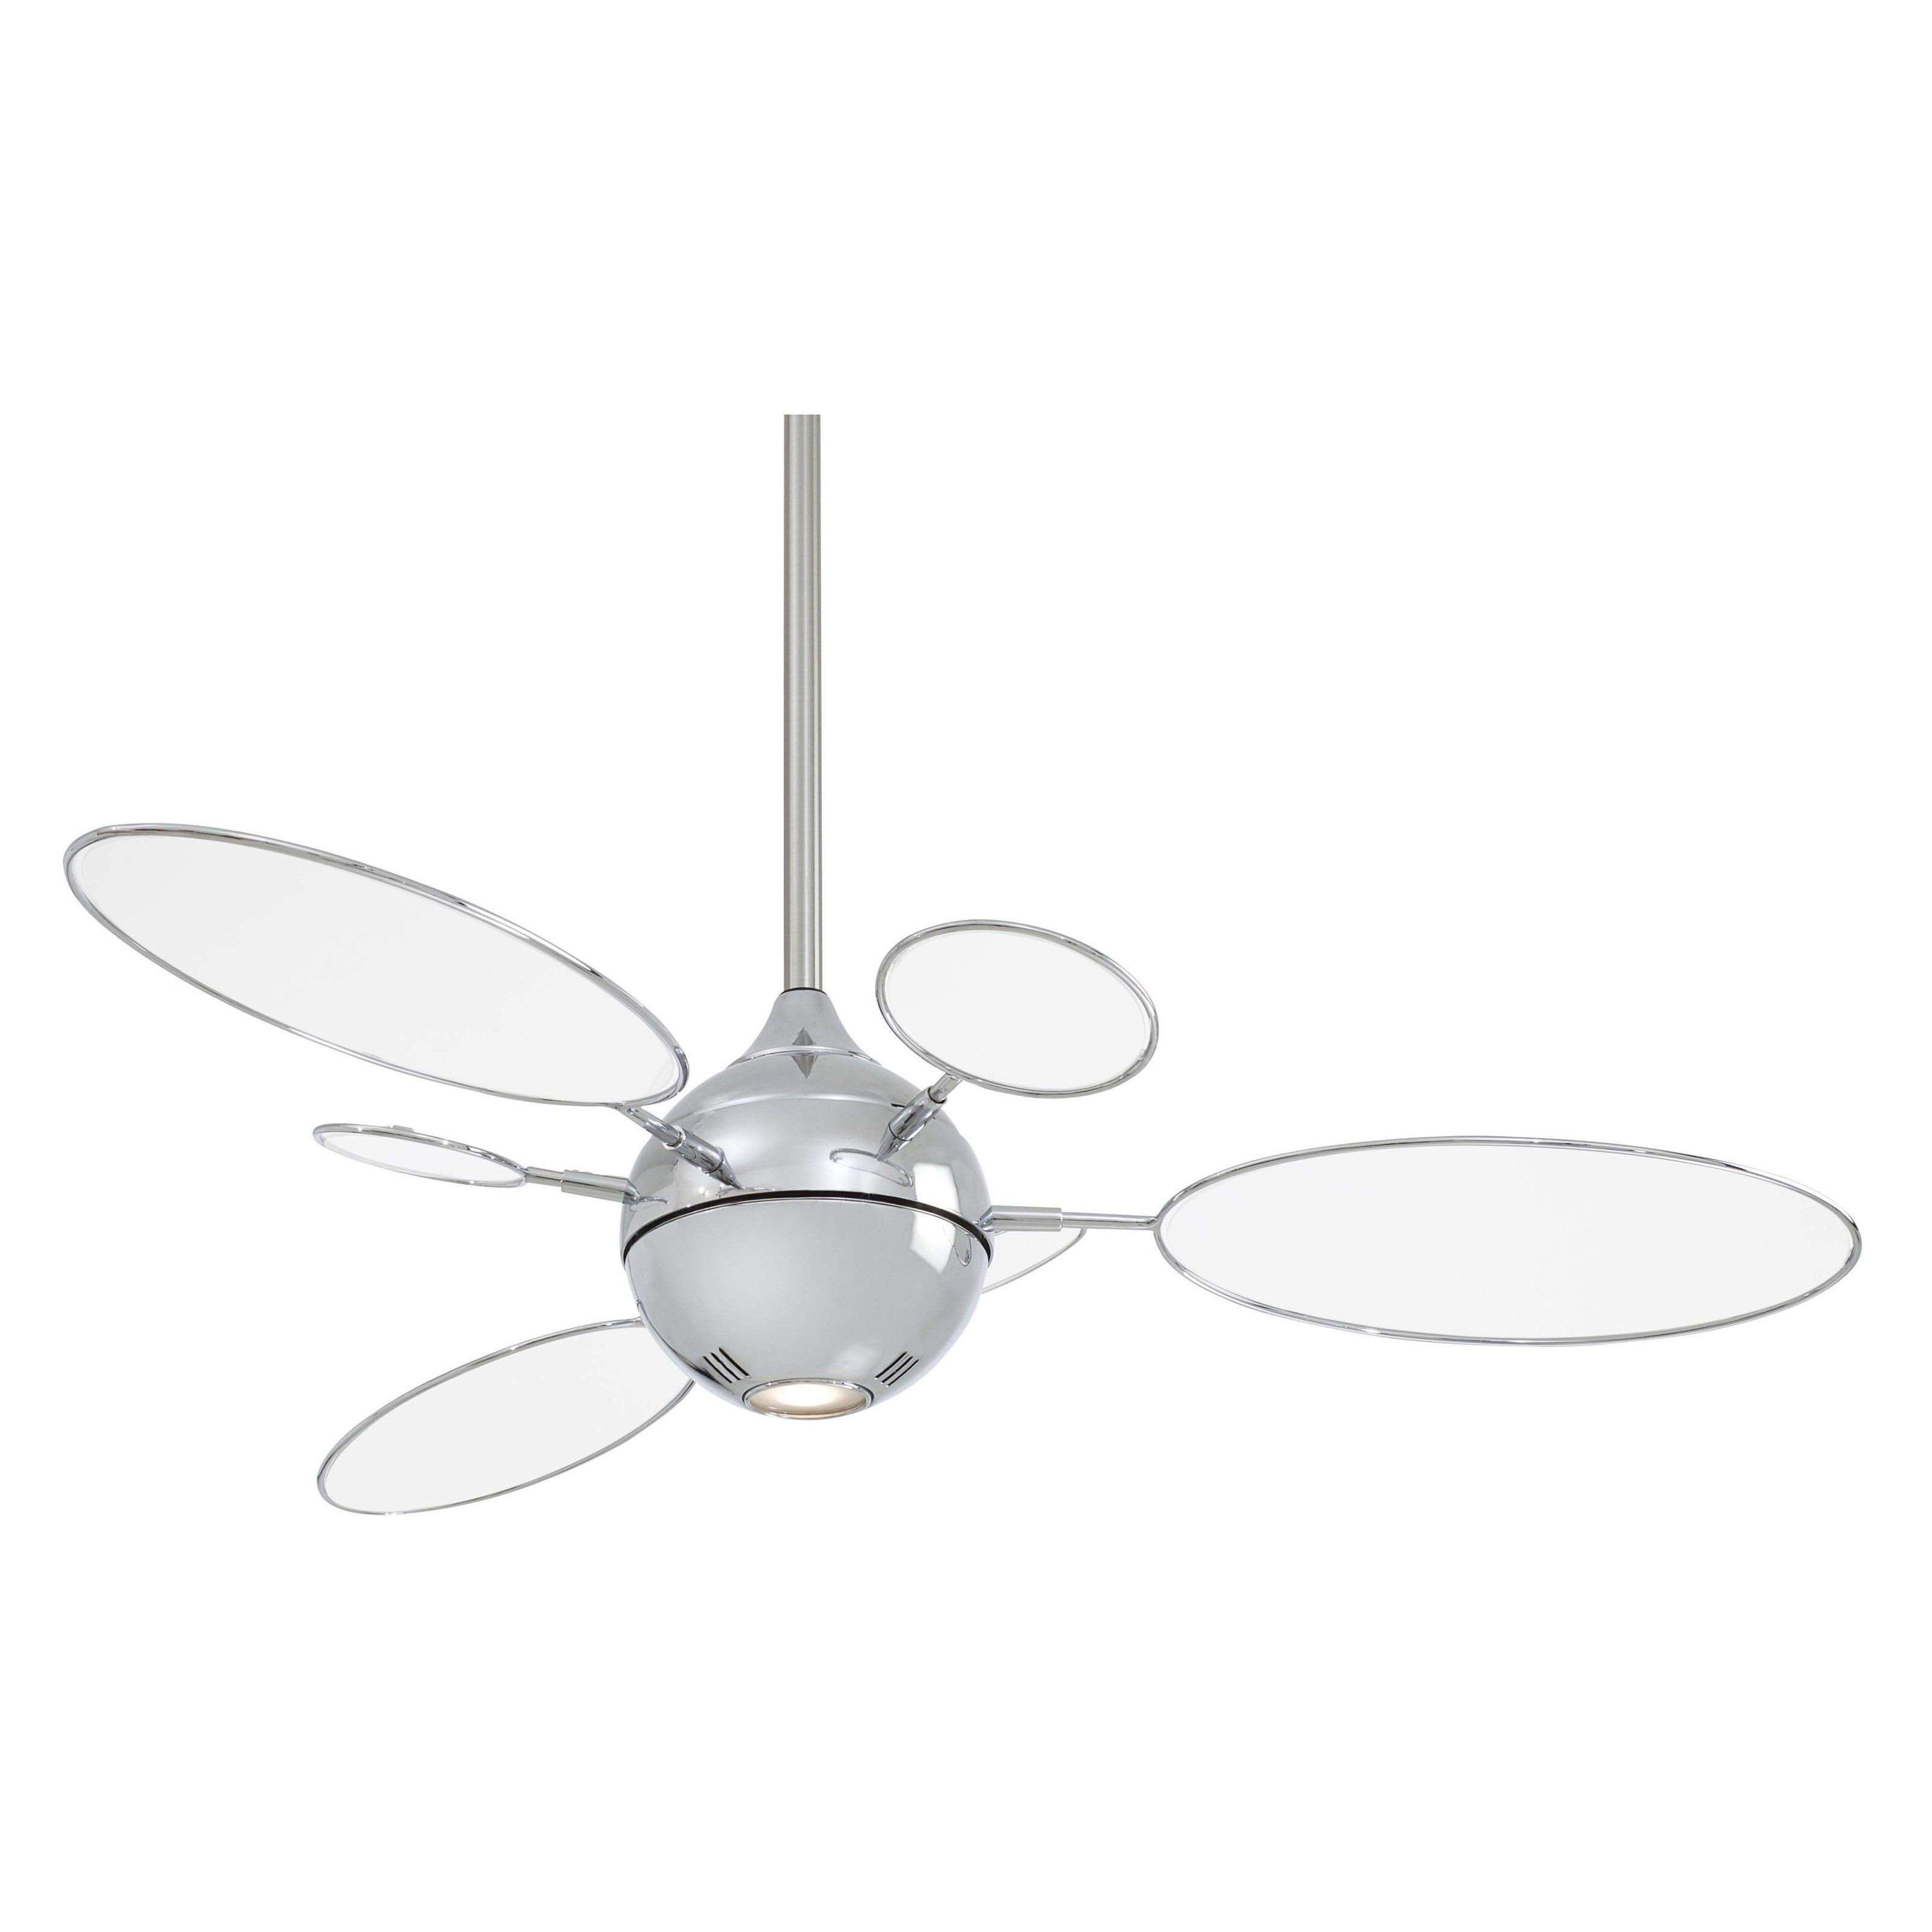 Have To Have It Minka Aire F596 Pn Tl Cirque 54 In And 25 In Indoor Ceiling Fan Polished Nickel 519 Modern Ceiling Fan Ceiling Fan With Light Ceiling Fan